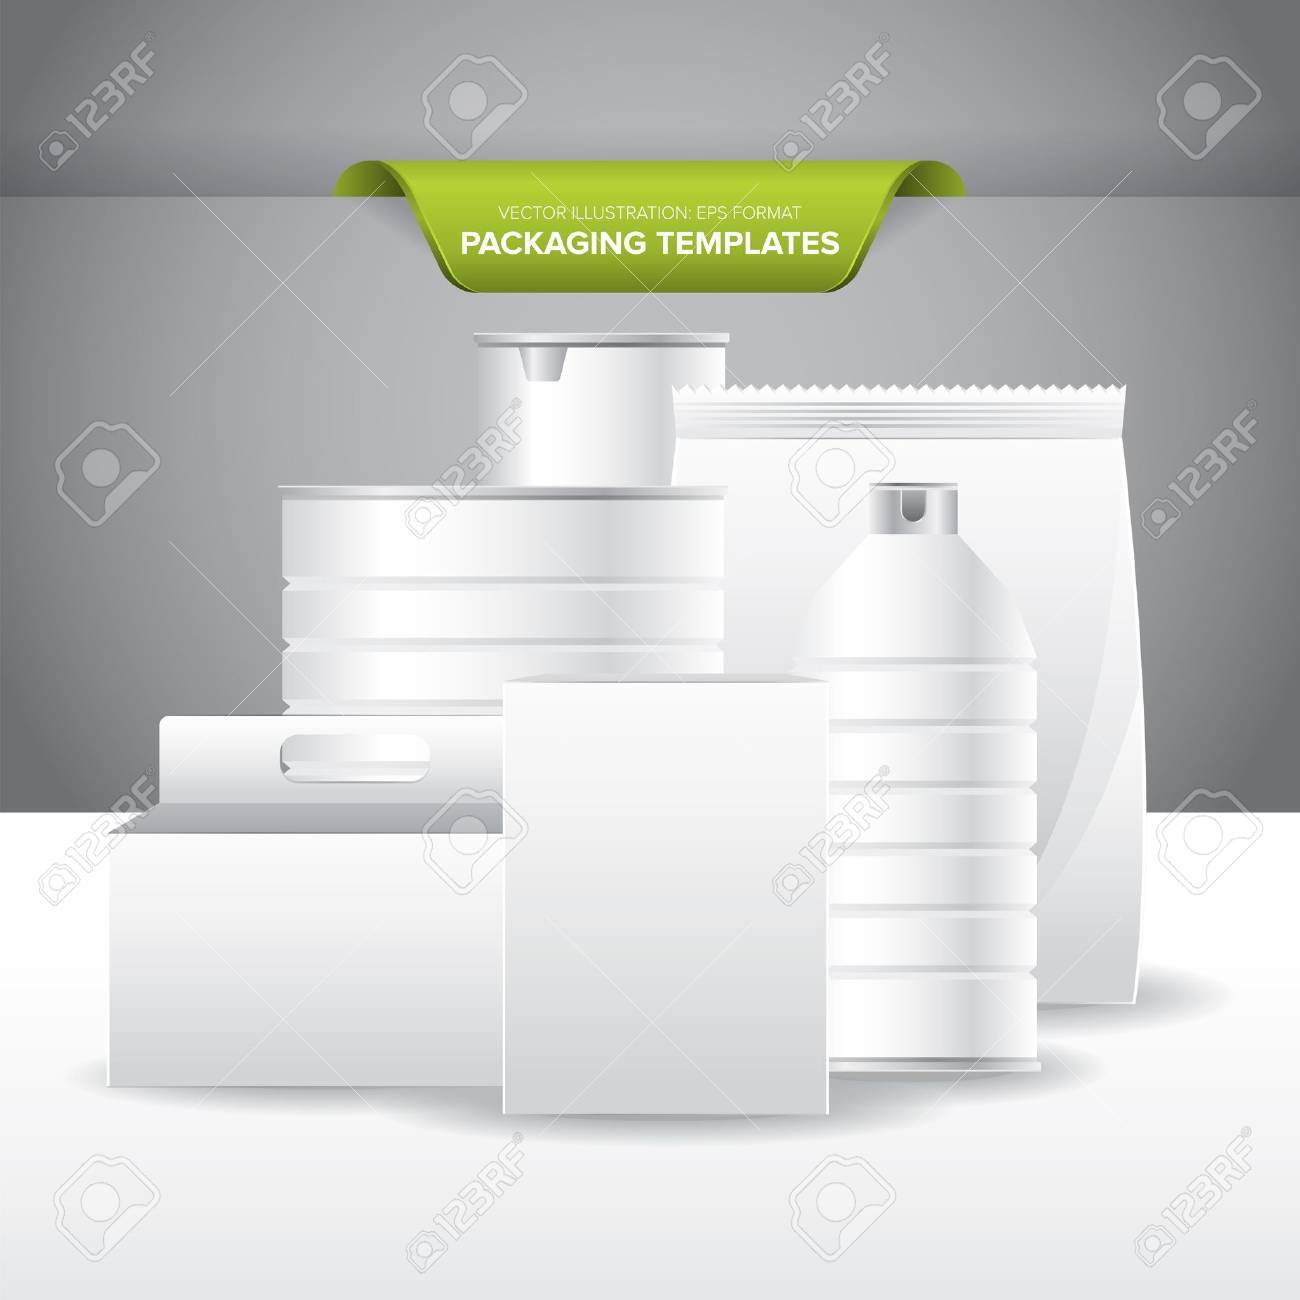 Set Of Empty And Blank Packaging Templates For Food And Beverage ...